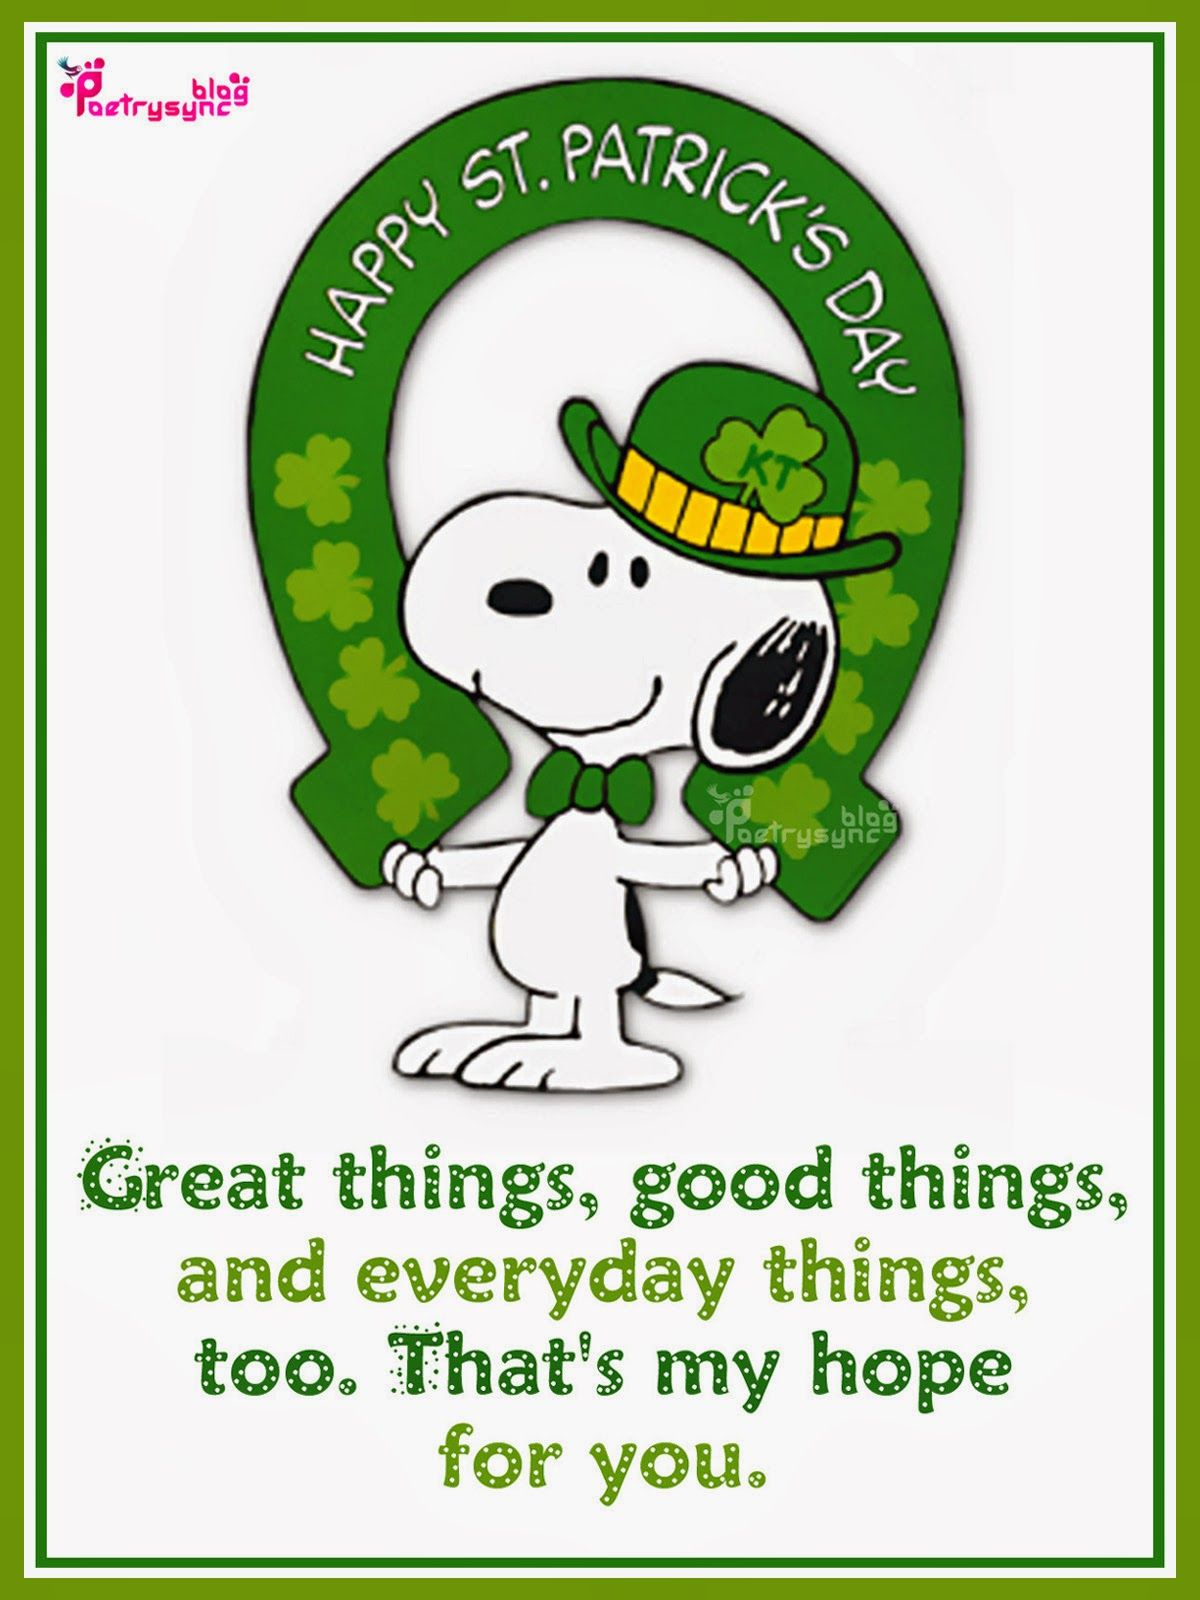 Happy saint patricks day greetings picture irish saying image happy saint patricks day greetings picture irish saying image m4hsunfo